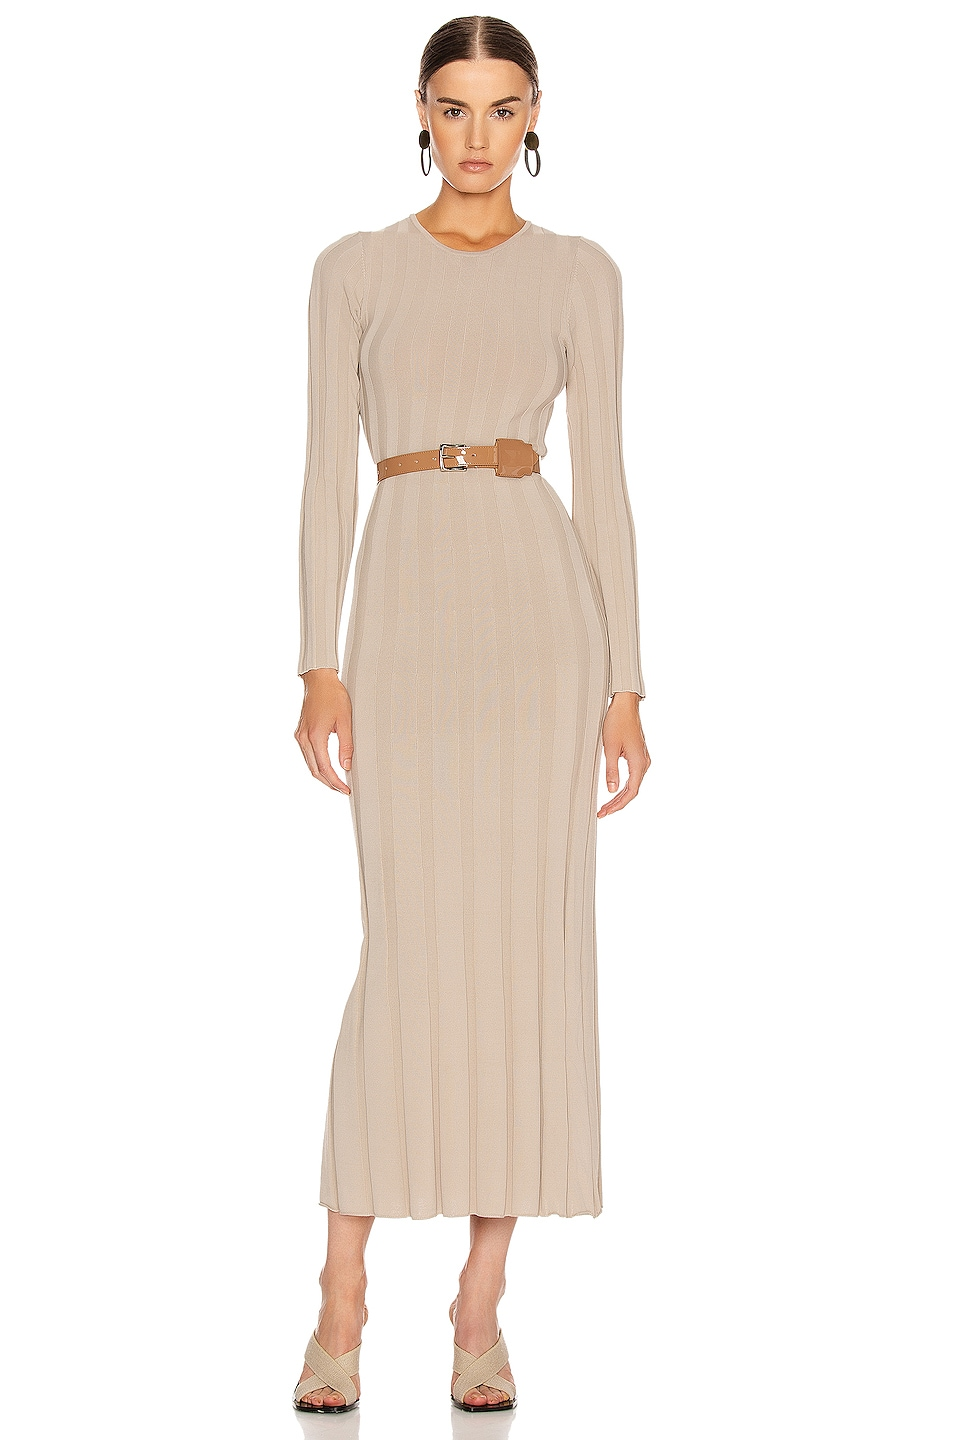 Image 1 of Toteme Bianco Dress in Sand